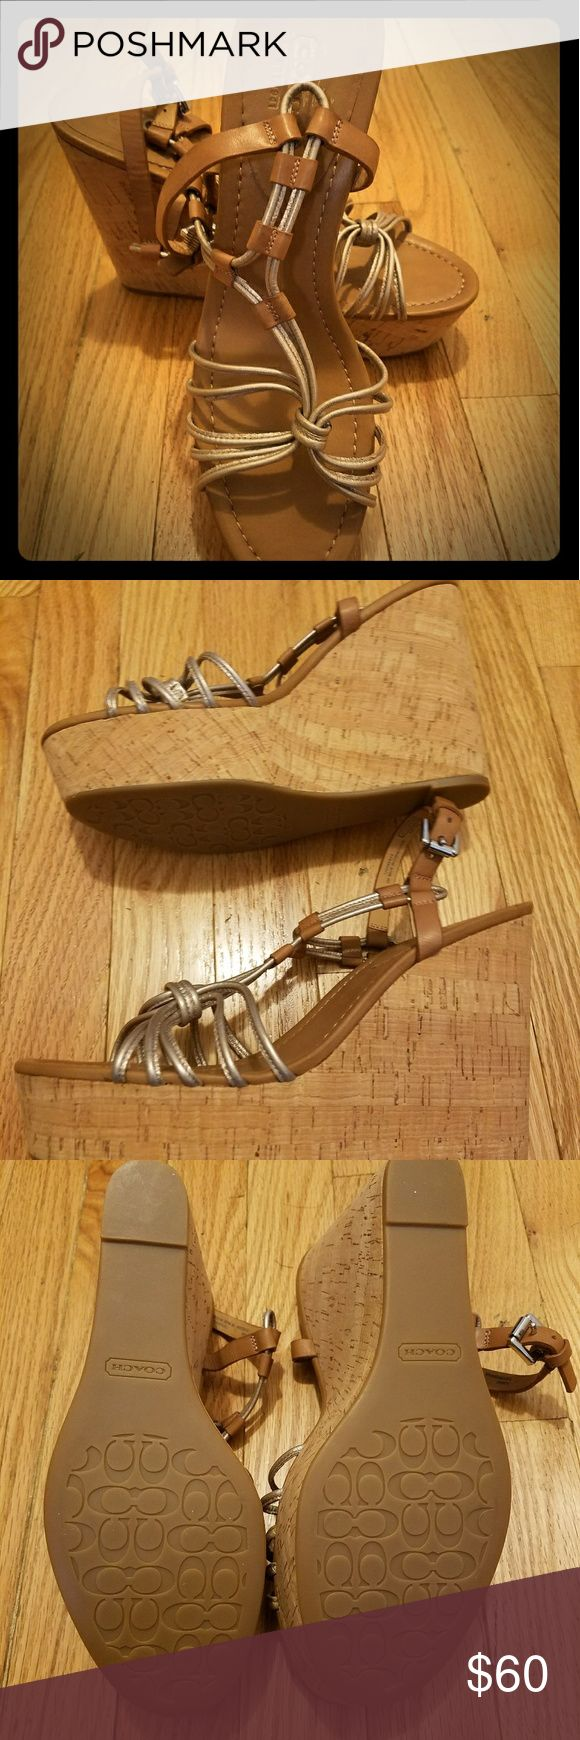 Metallic Georgians Coach Wedges Metallic strappy sandal-style wedge heels. Tan cork wedge heel, tan leather sole, and silvery/gold straps. Only worn twice. Very comfortable and stylish. I'm tall and the heel was a bit too high for my style. Coach Shoes Heels